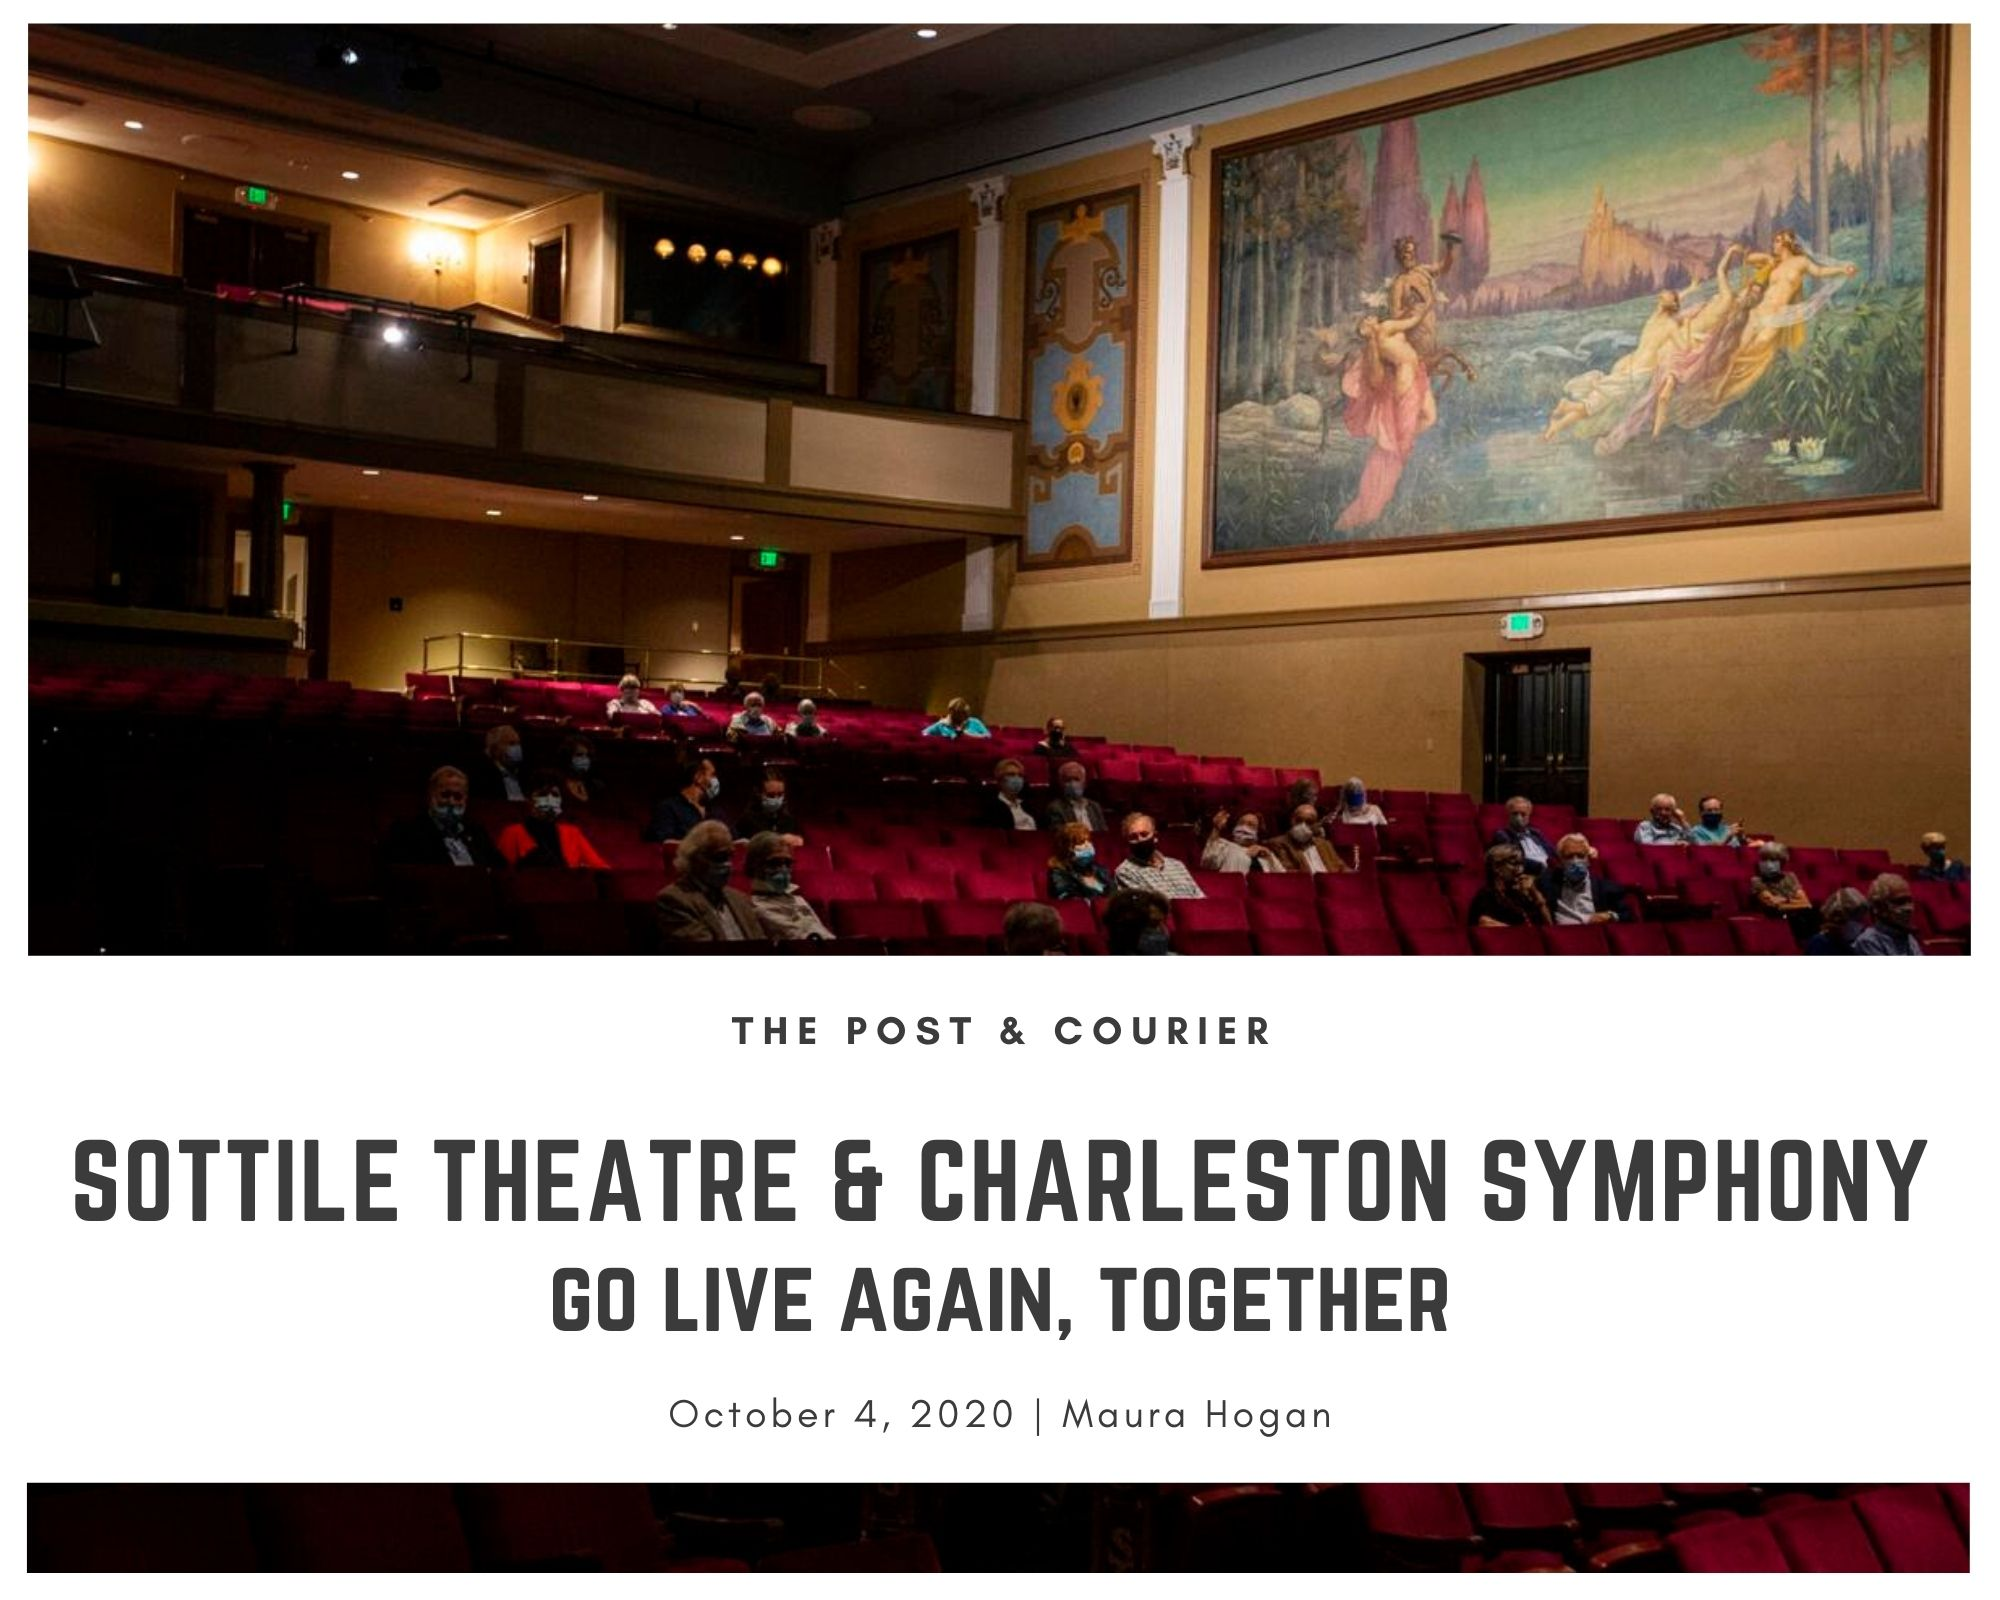 sottile-and-charleston-symphony-pc.jpg